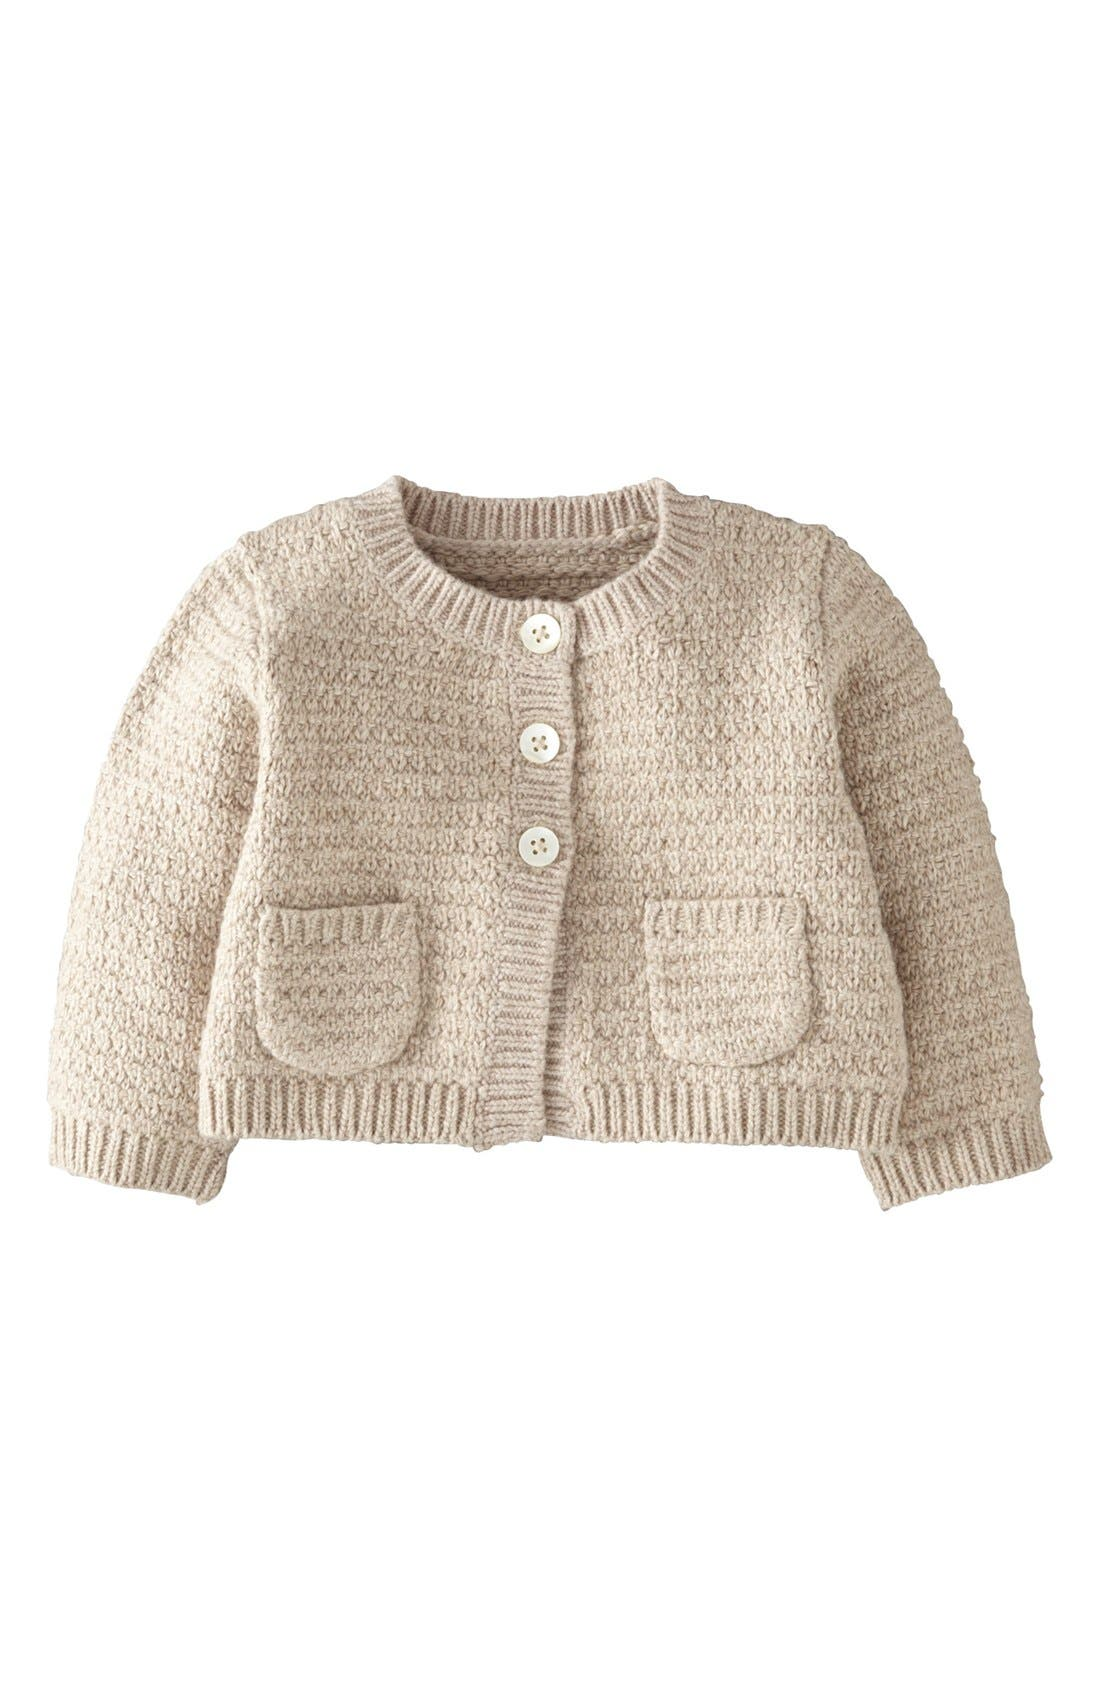 Alternate Image 1 Selected - Mini Boden Cardigan (Baby Girls)